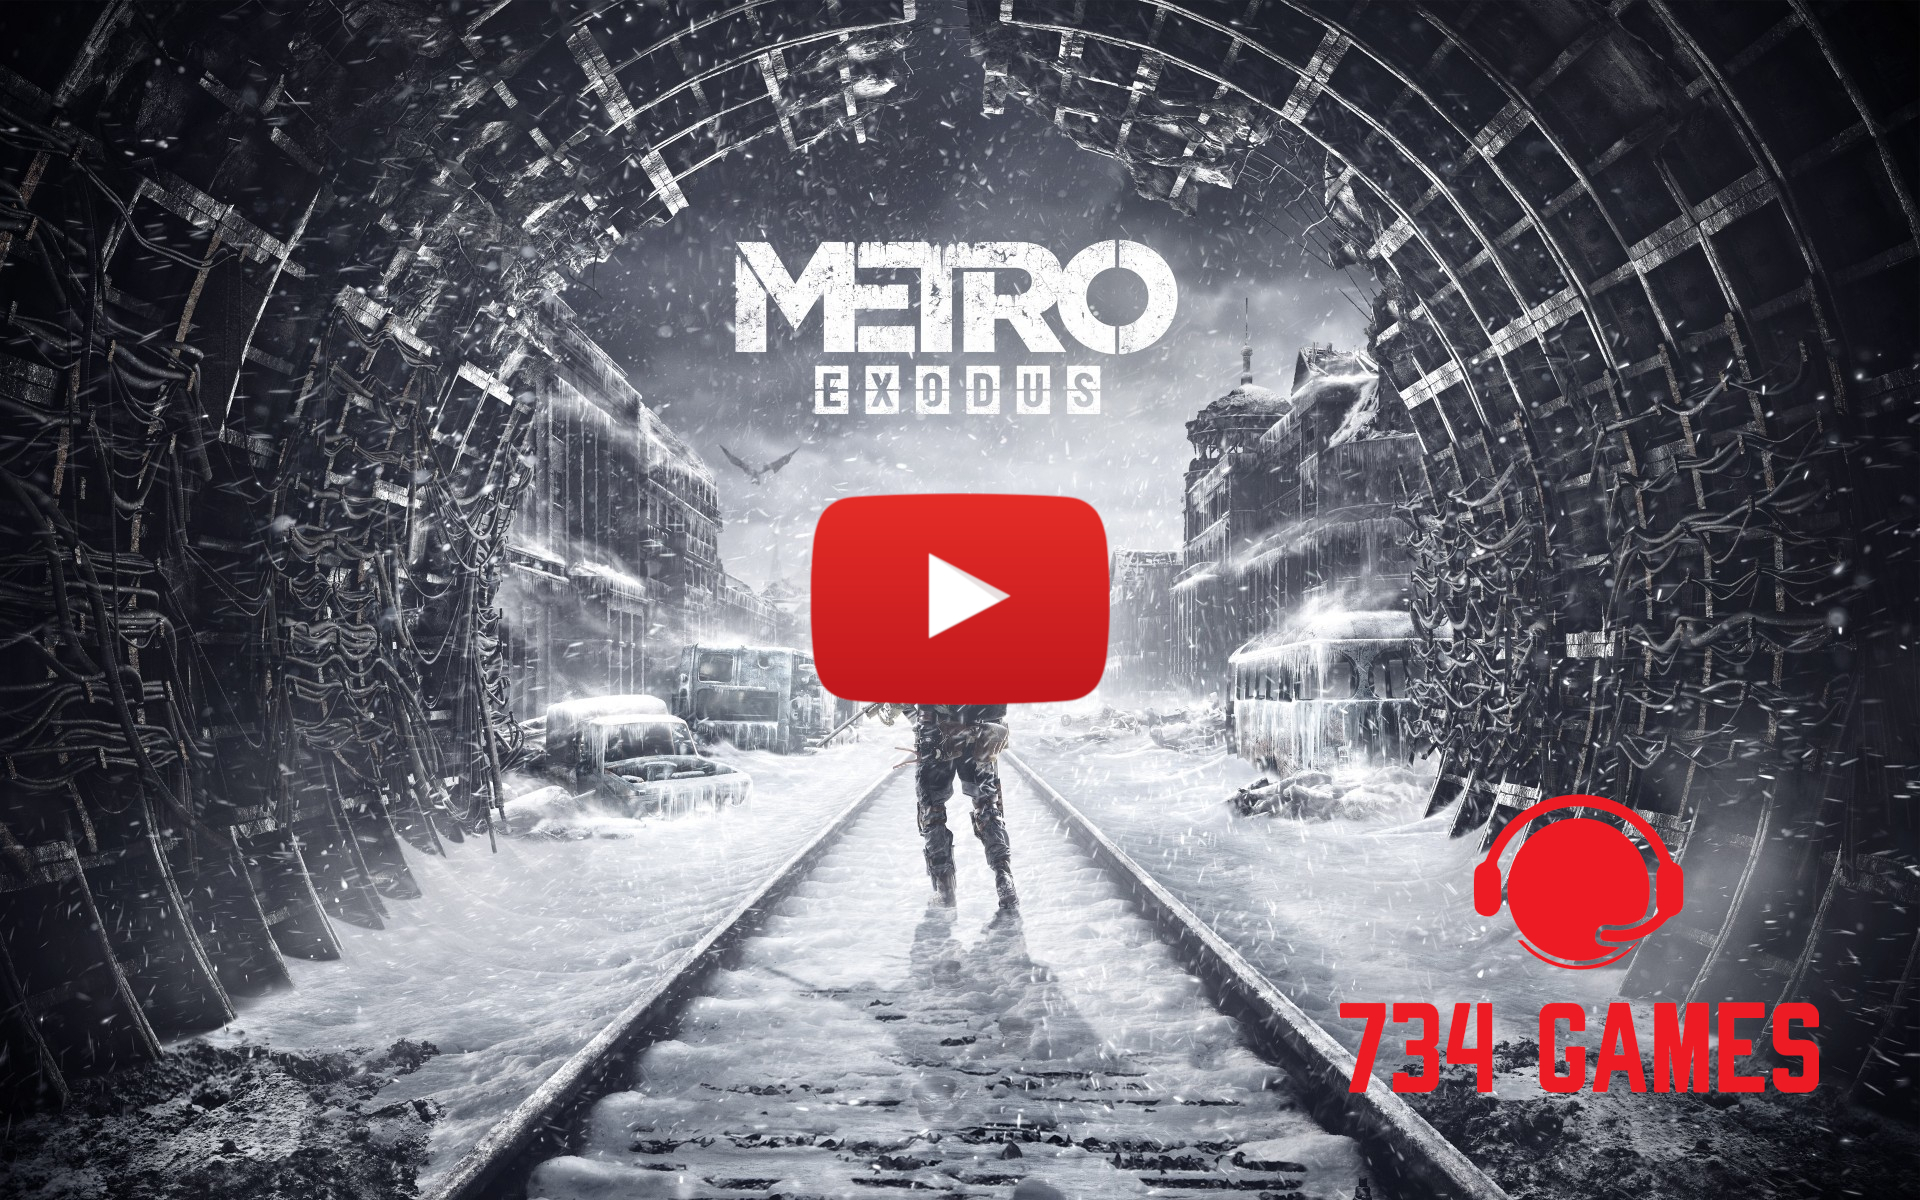 Metro Exodus Review, all Windows PC footage. How this somewhat controversial game ended up.